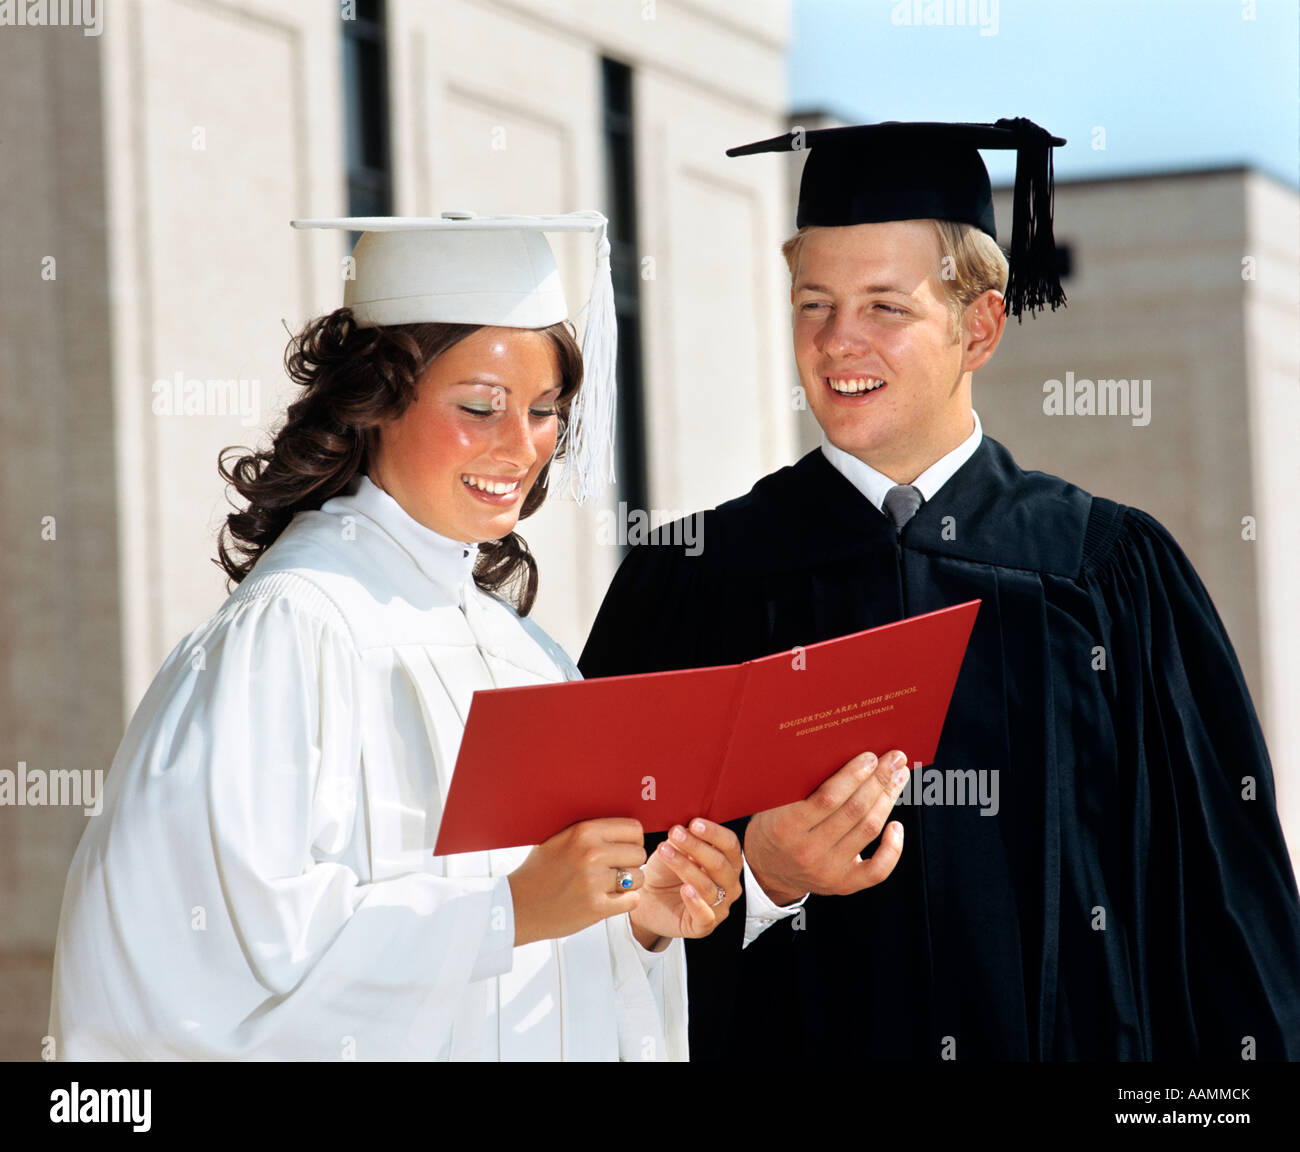 4252fb03dbf 1970s TEEN COUPLE GIRL WHITE ROBE BOY IN BLACK ROBE MORTARBOARD HOLD RED  DIPLOMA BETWEEN THEM